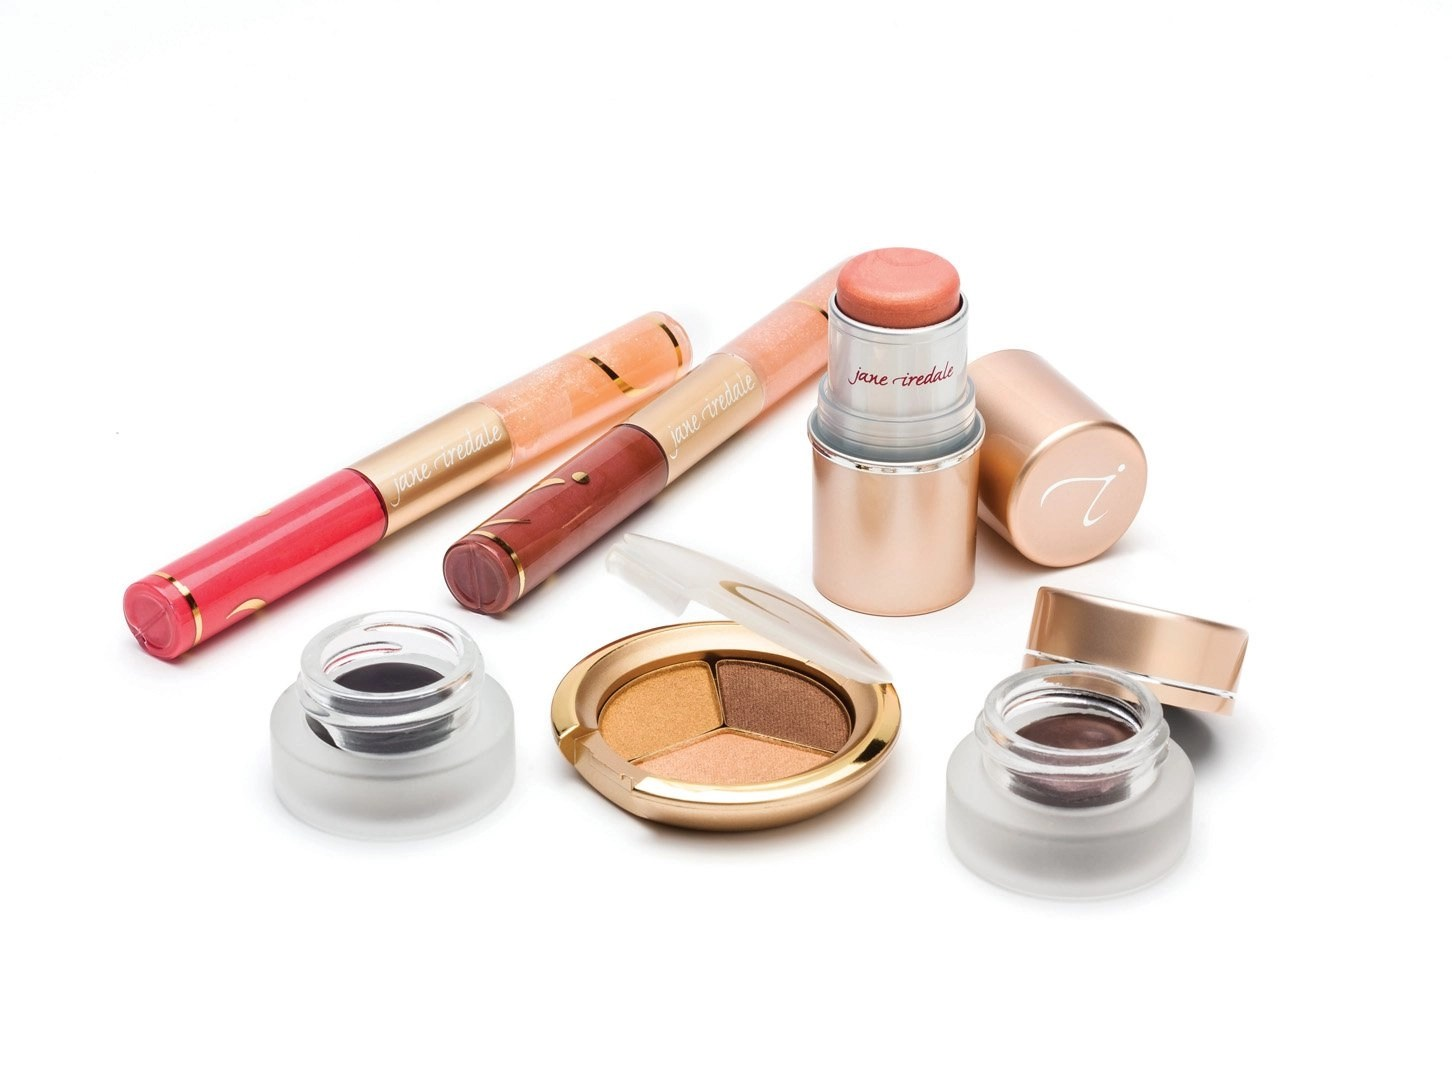 Jane iredale throws a garden party in winter to launch magic hour jane iredale throws a garden party in winter to launch magic hour for spring janeiredale magichour advice sisters nvjuhfo Choice Image